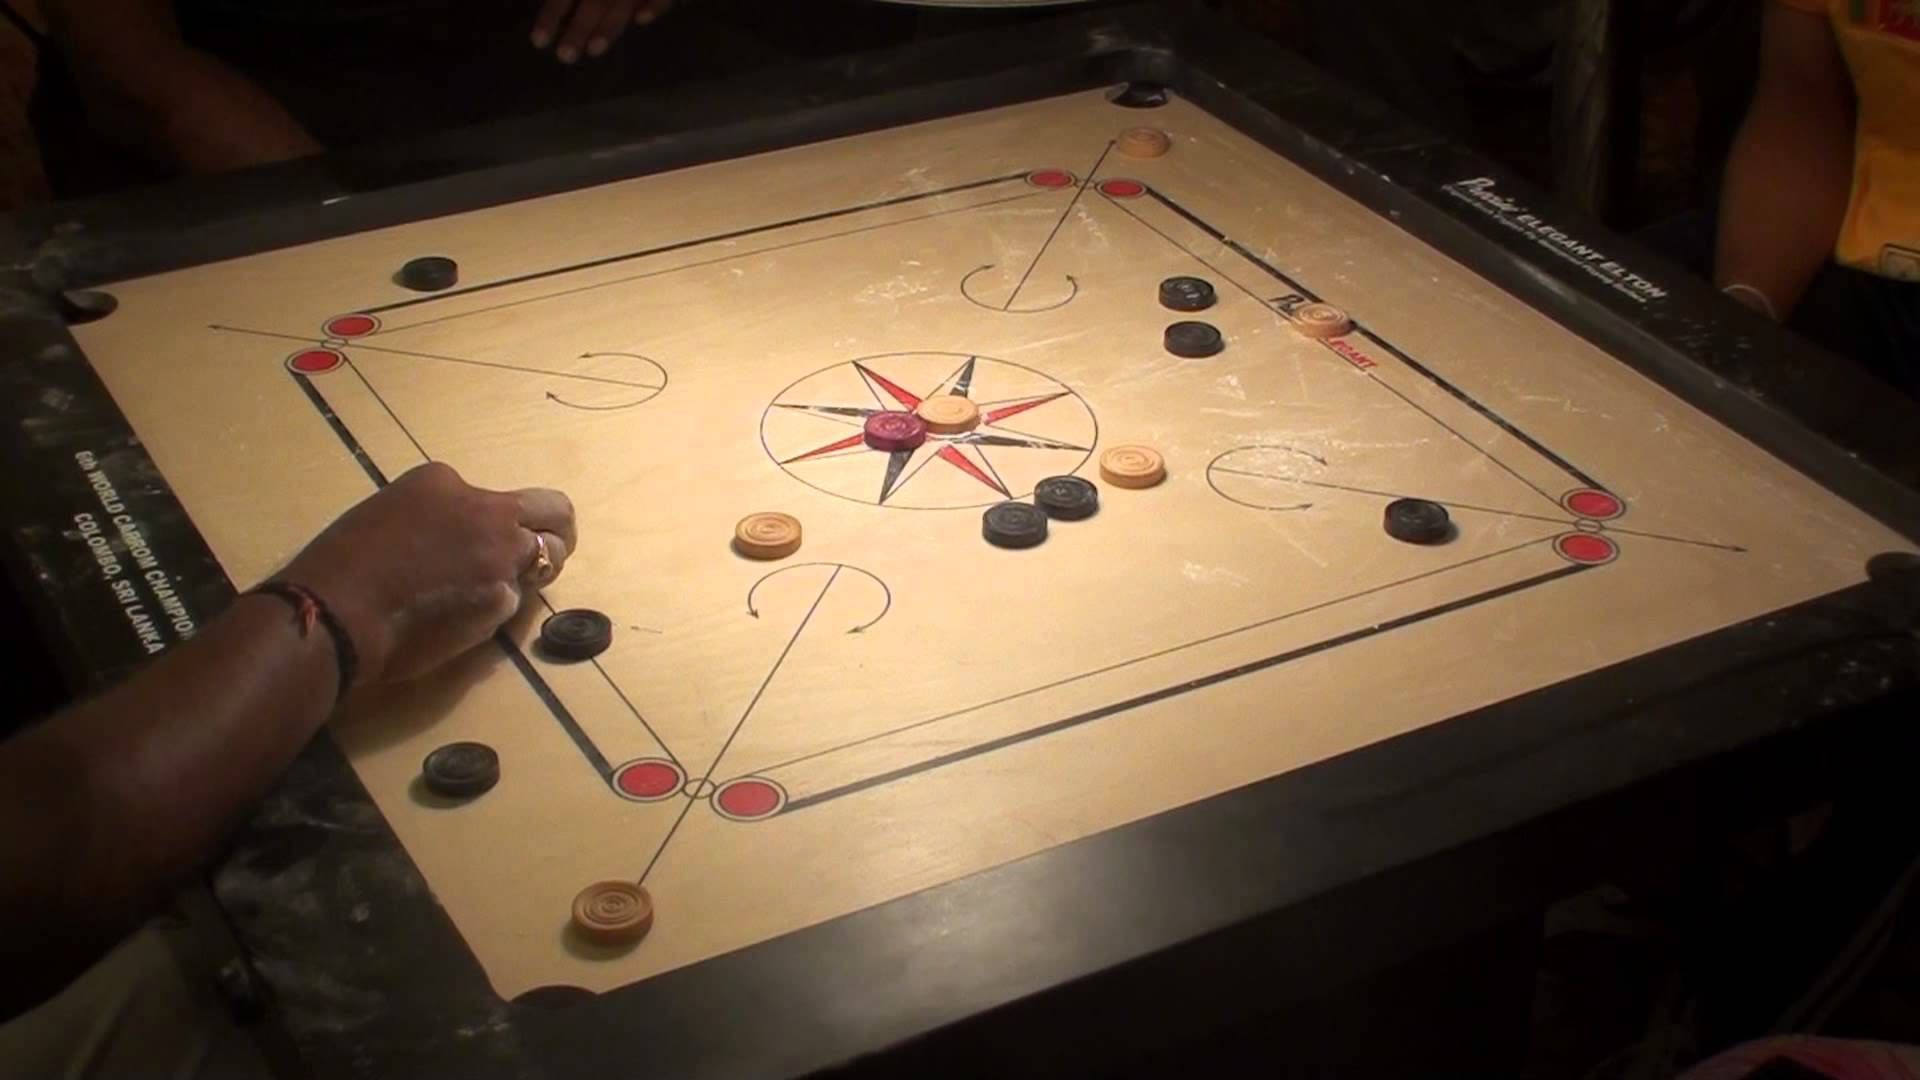 Yogegh Pardesi Vs Chamil Cooray Carrom World Cup 2012 World Cup 2012 Hobbies And Crafts Old Games